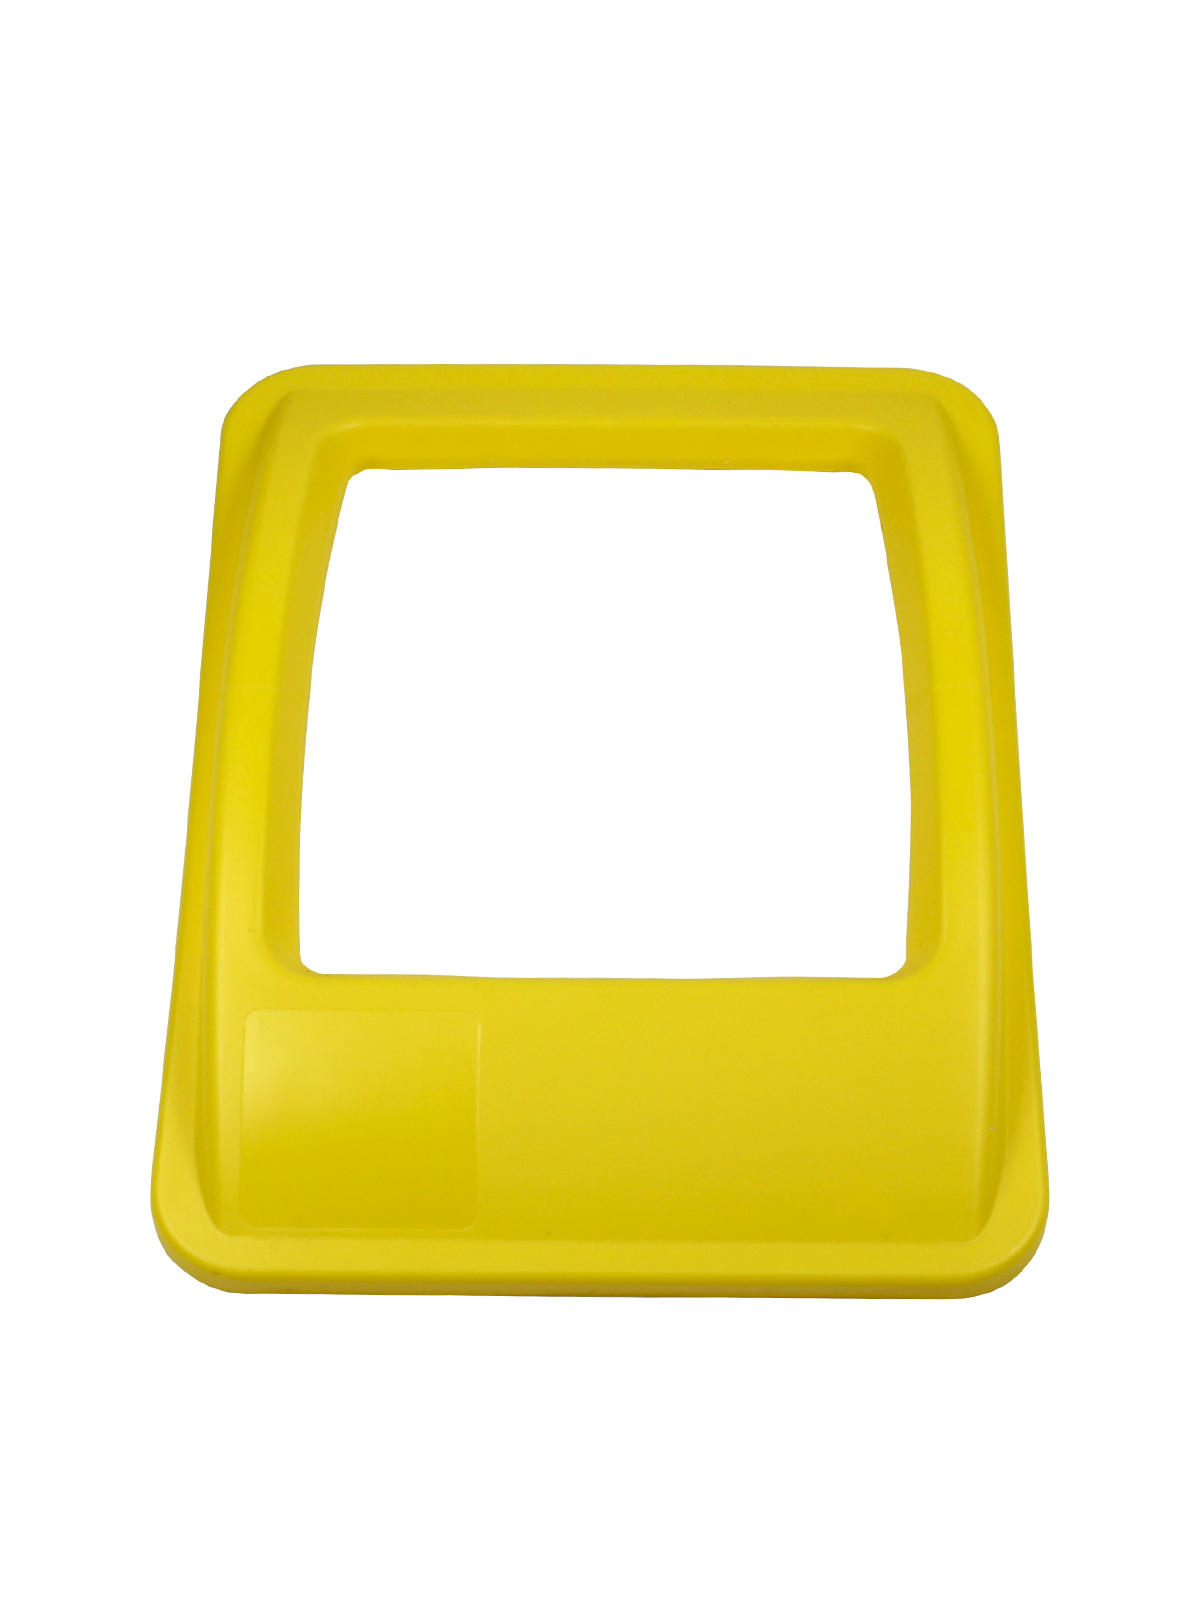 WASTE WATCHER® XL - LID - FULL OPENING - YELLOW title=